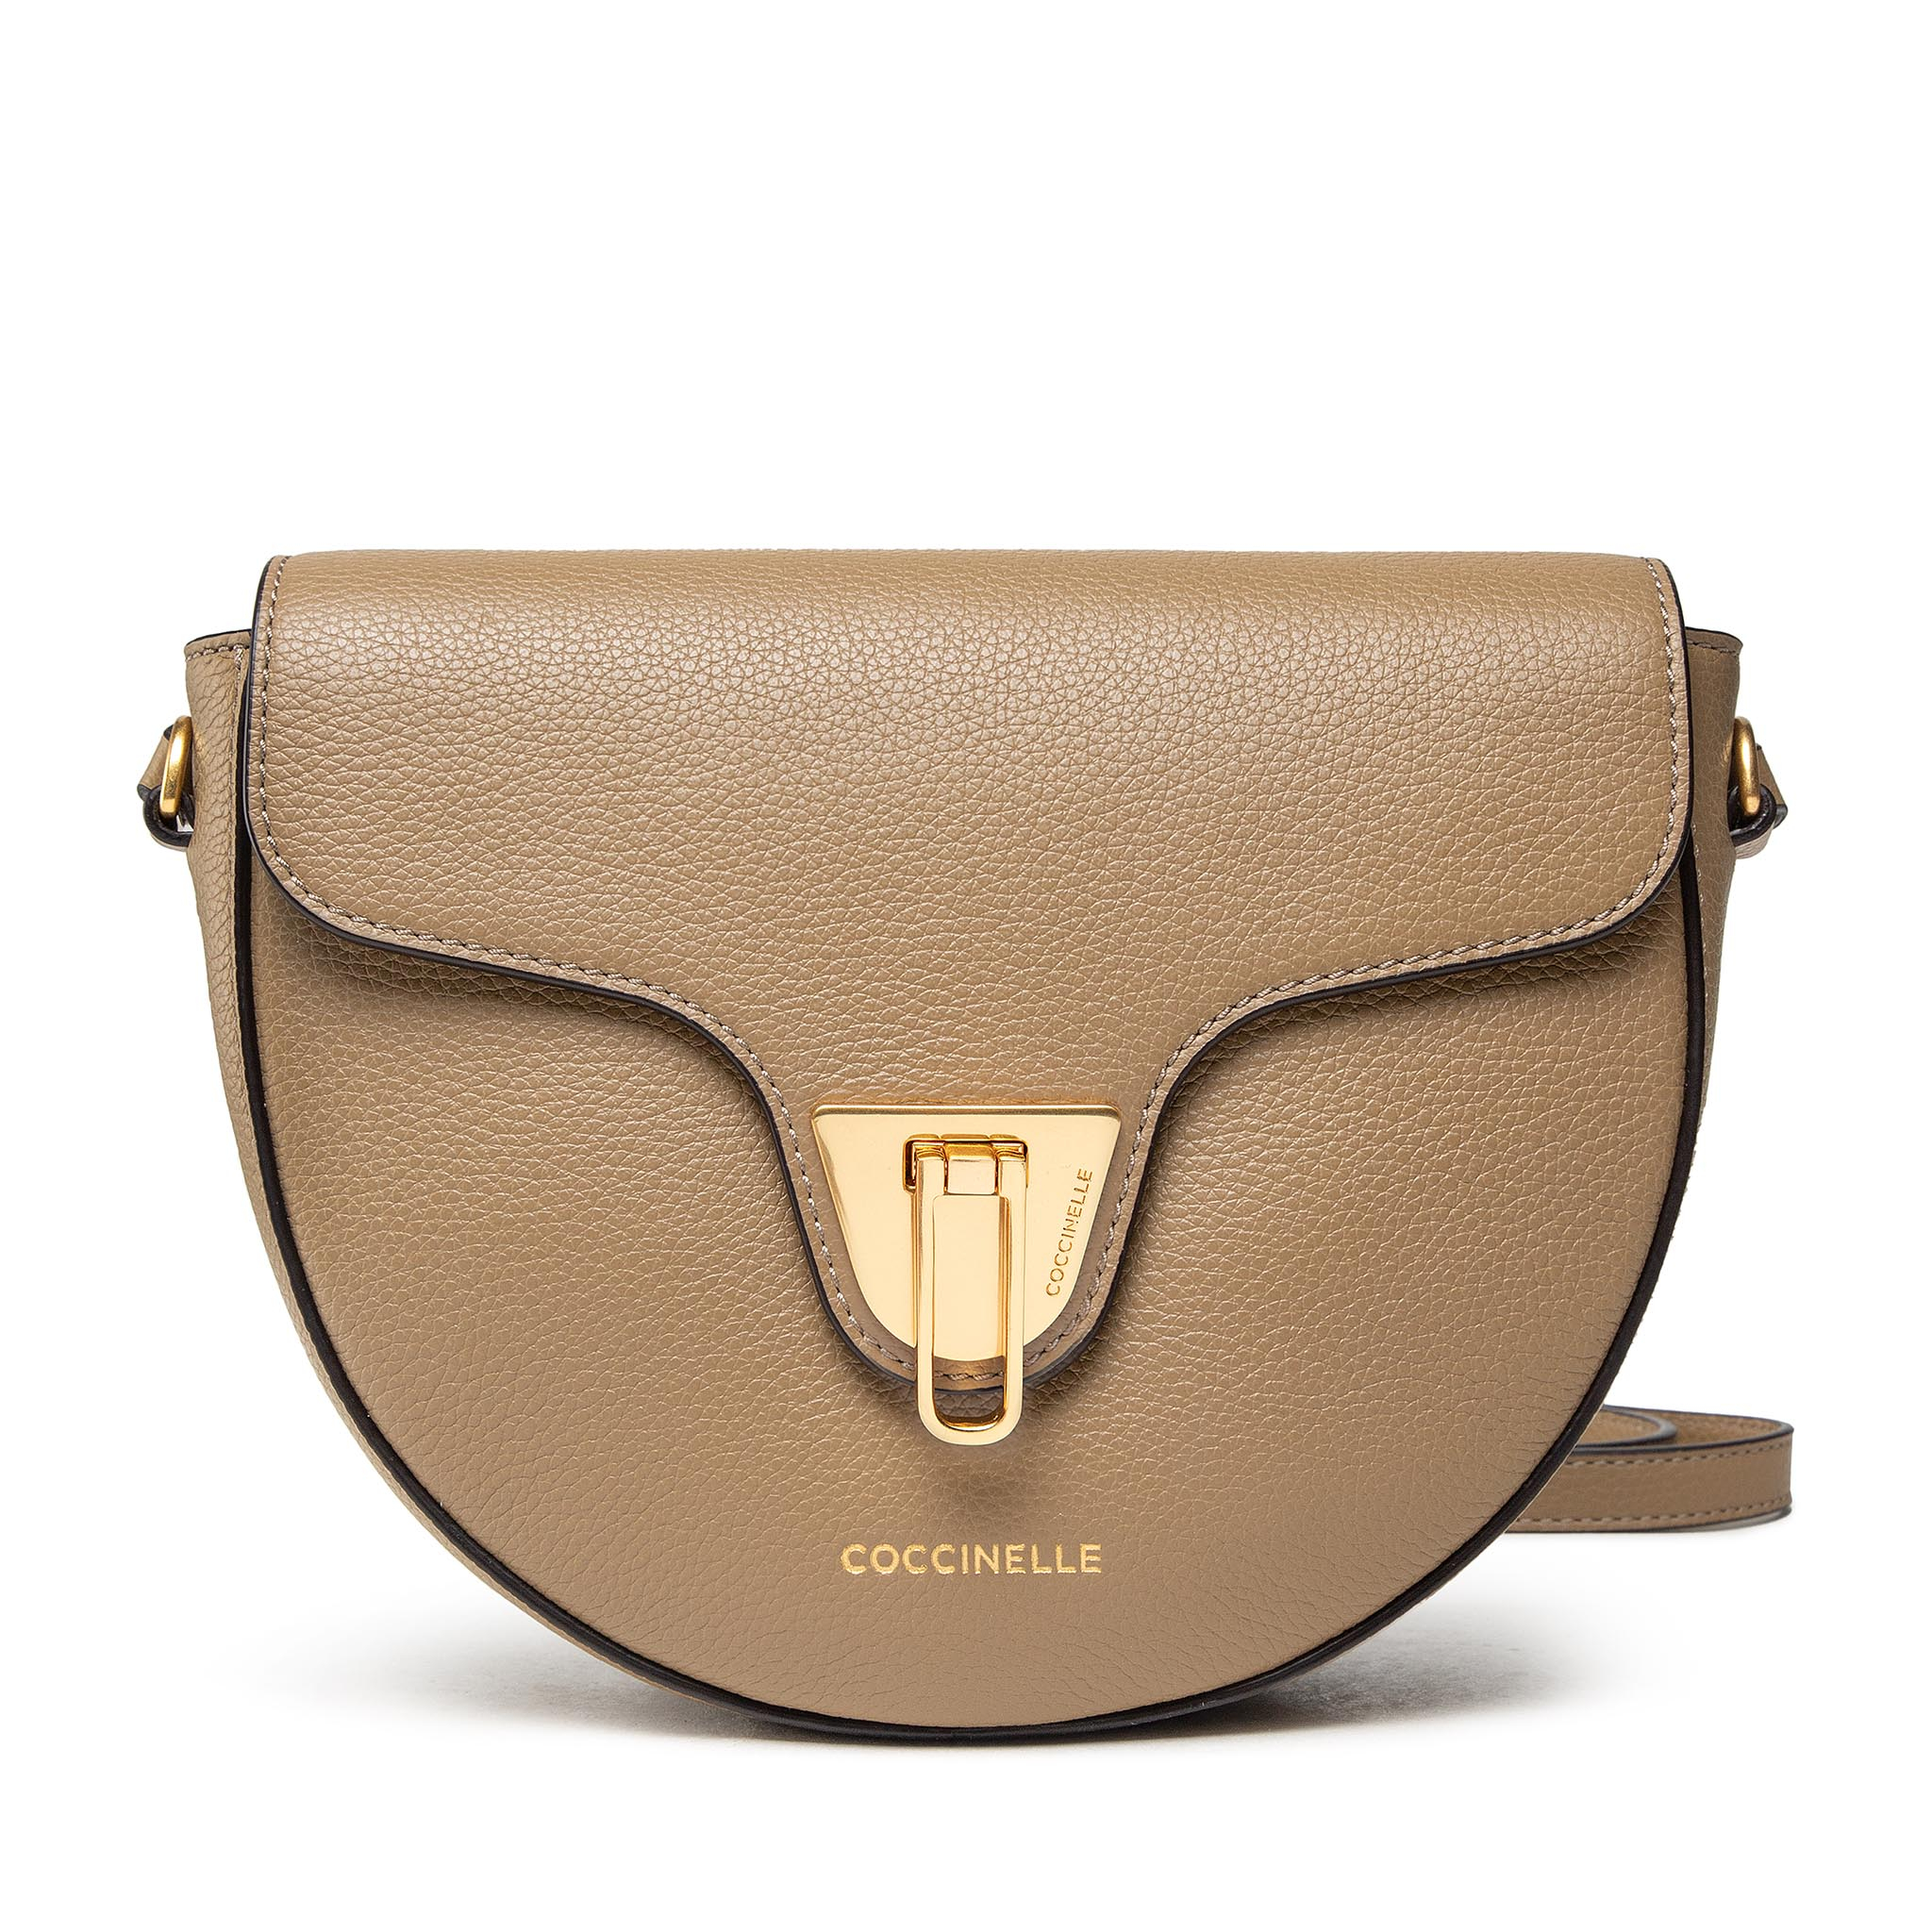 Coccinelle IF6 Beat Soft E1 IF6 15 03 01 Taupe N75